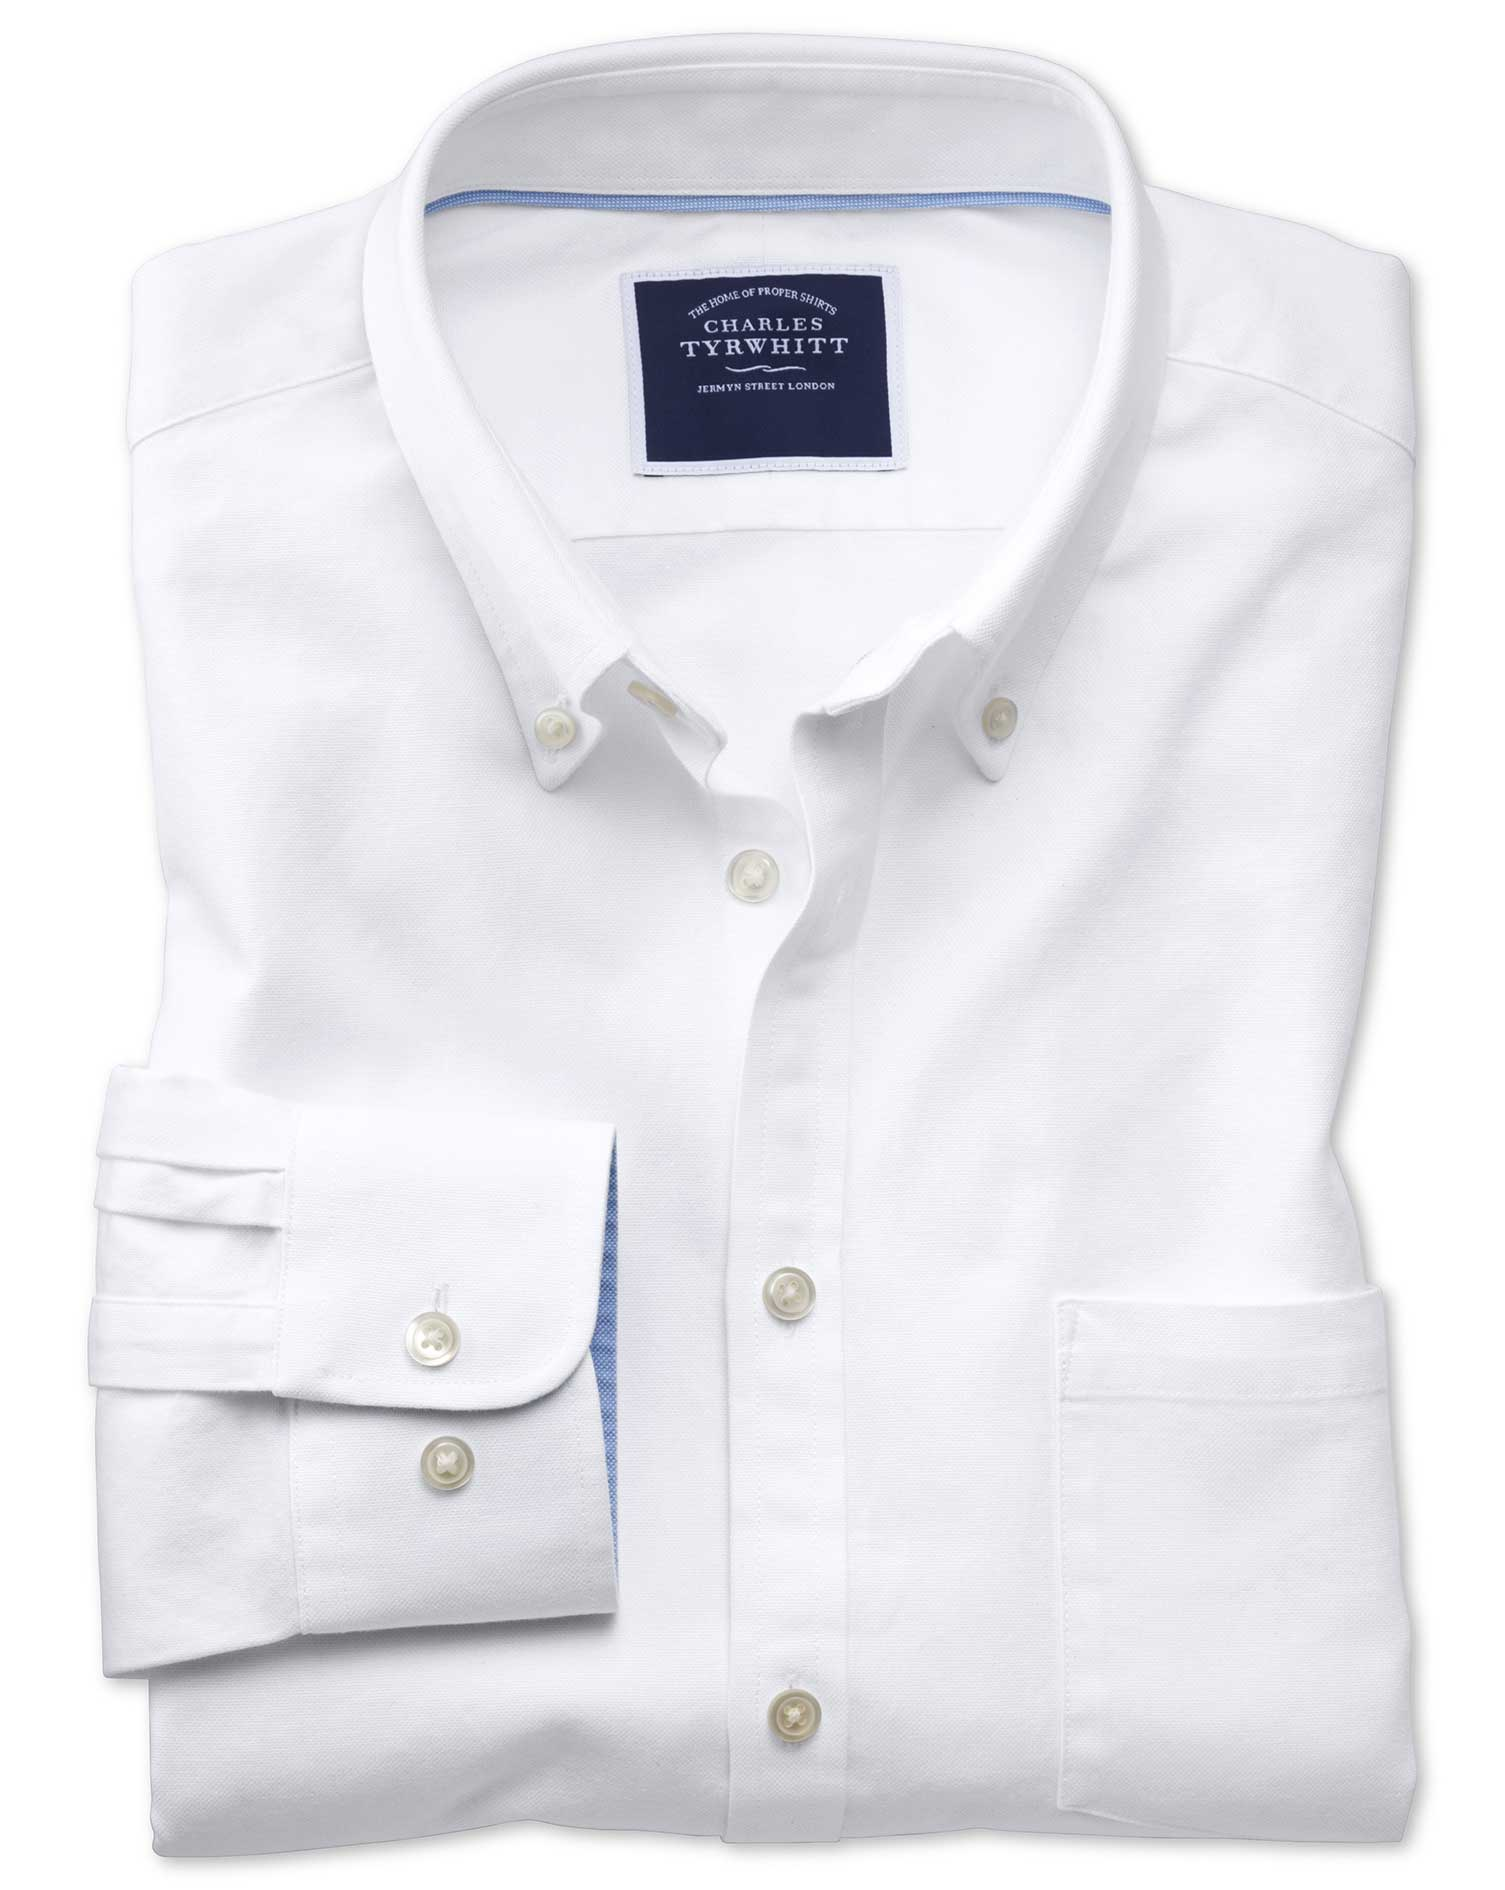 Slim Fit Button-Down Washed Oxford Plain White Cotton Shirt Single Cuff Size Large by Charles Tyrwhi